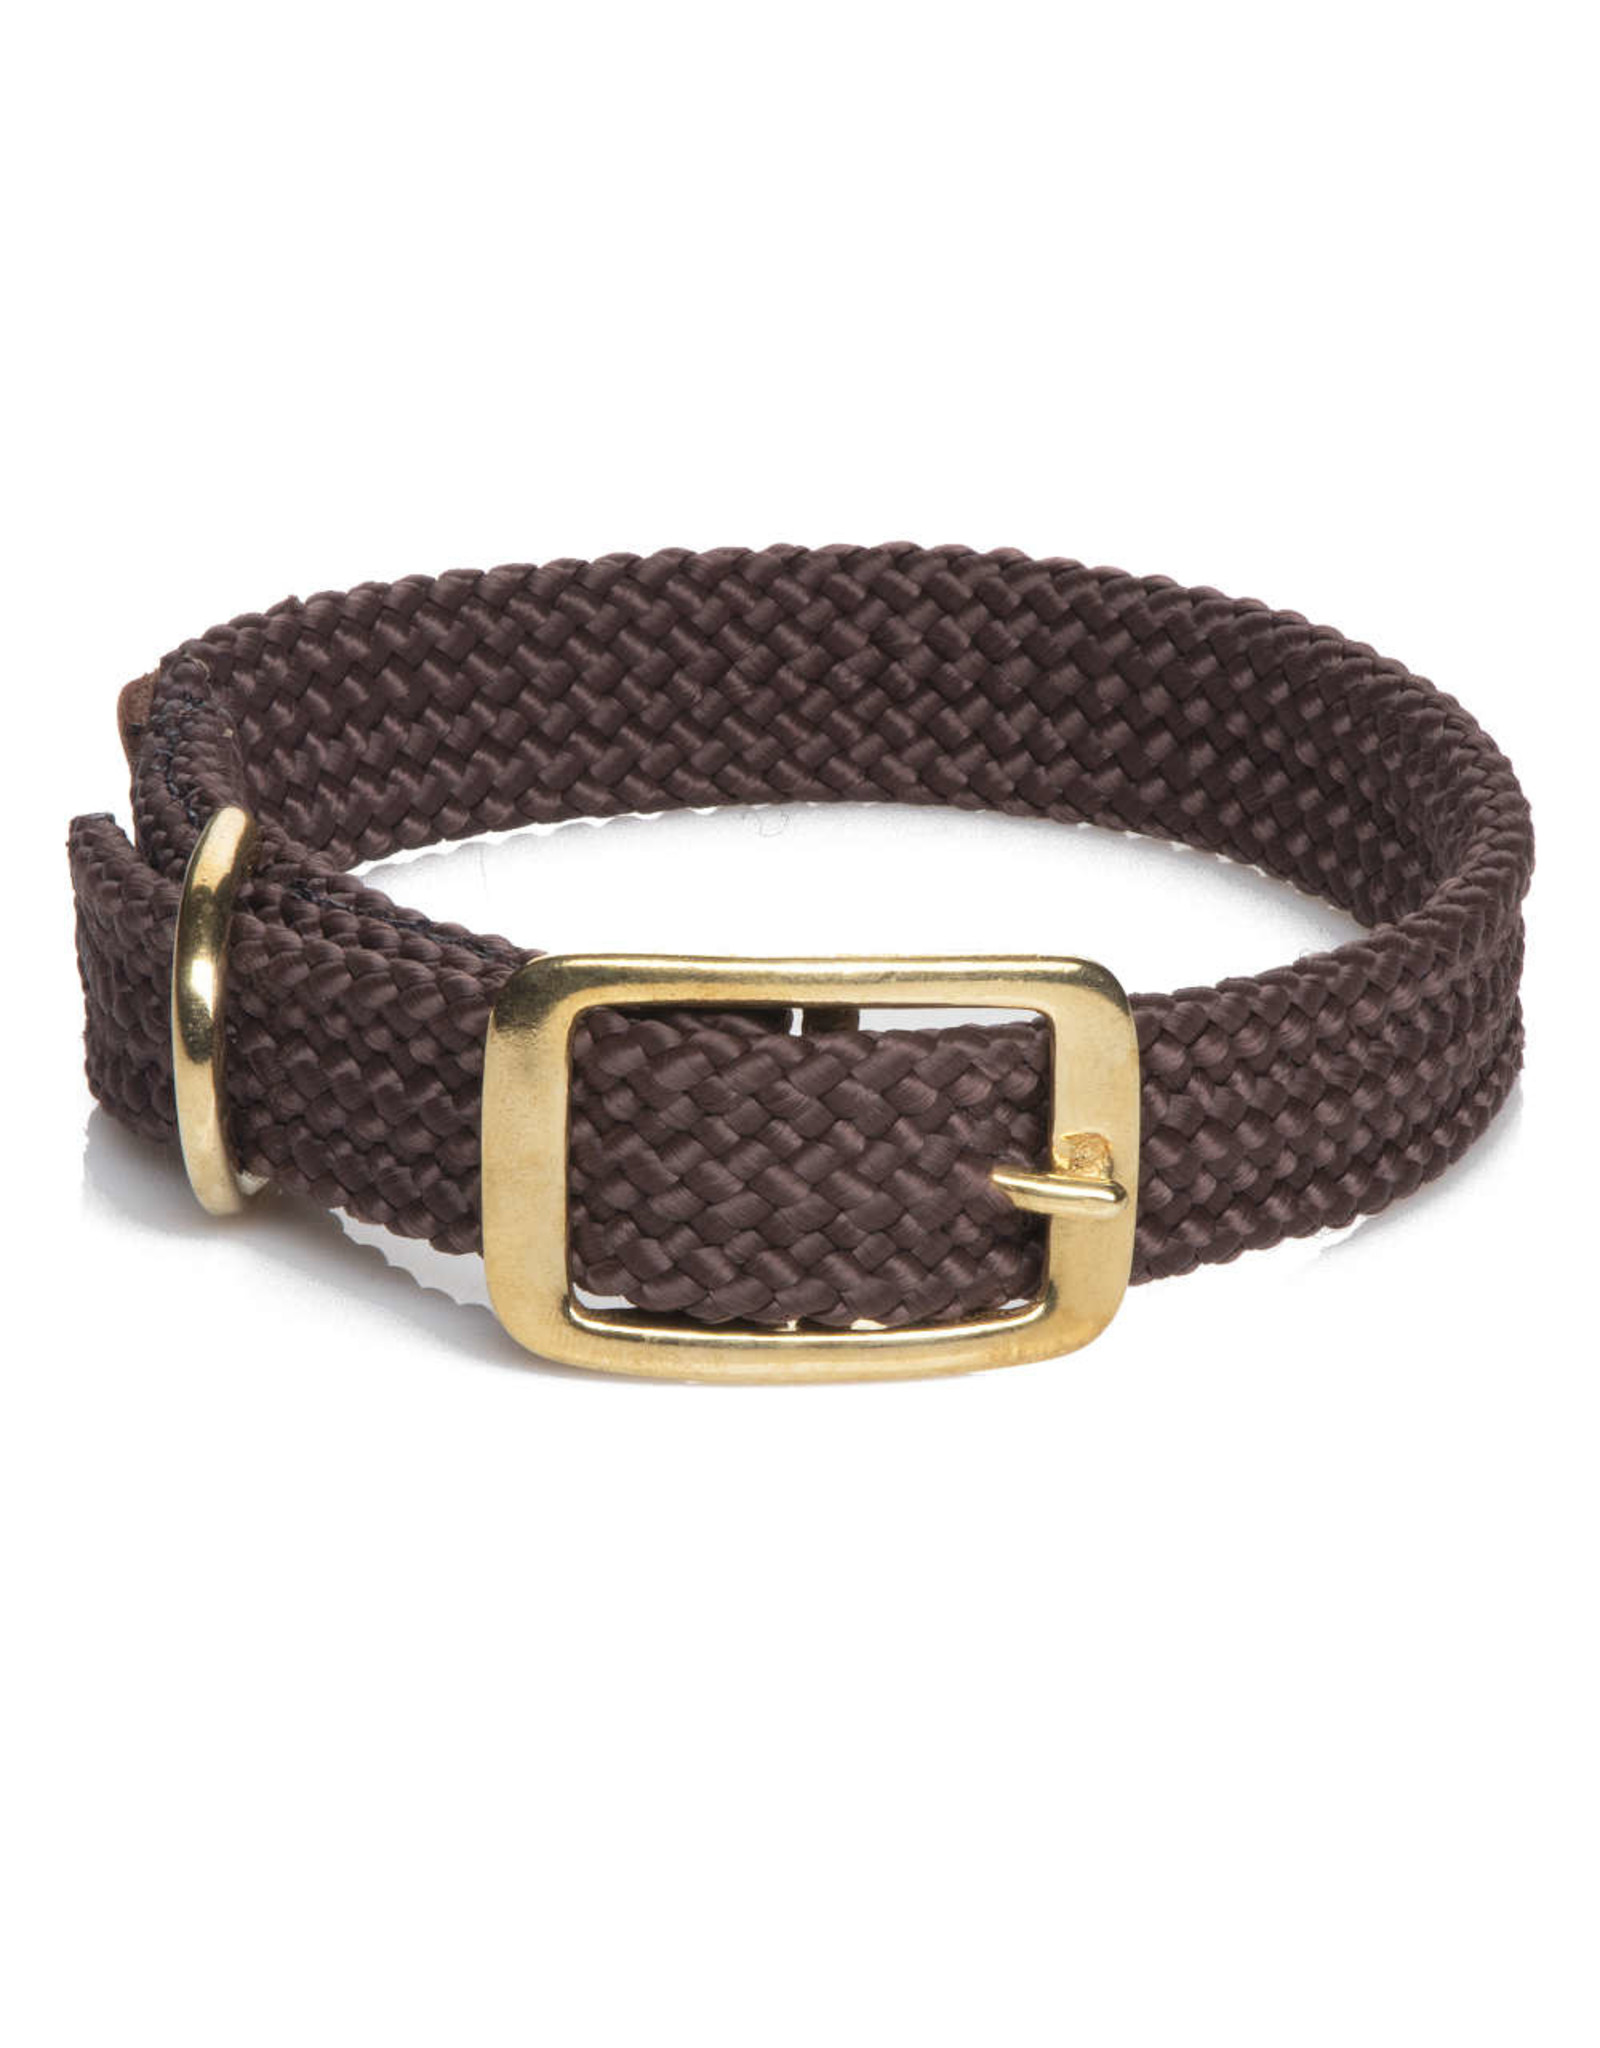 "Mendota Mendota Double-Braid Collar DARK BROWN 1""x18"""